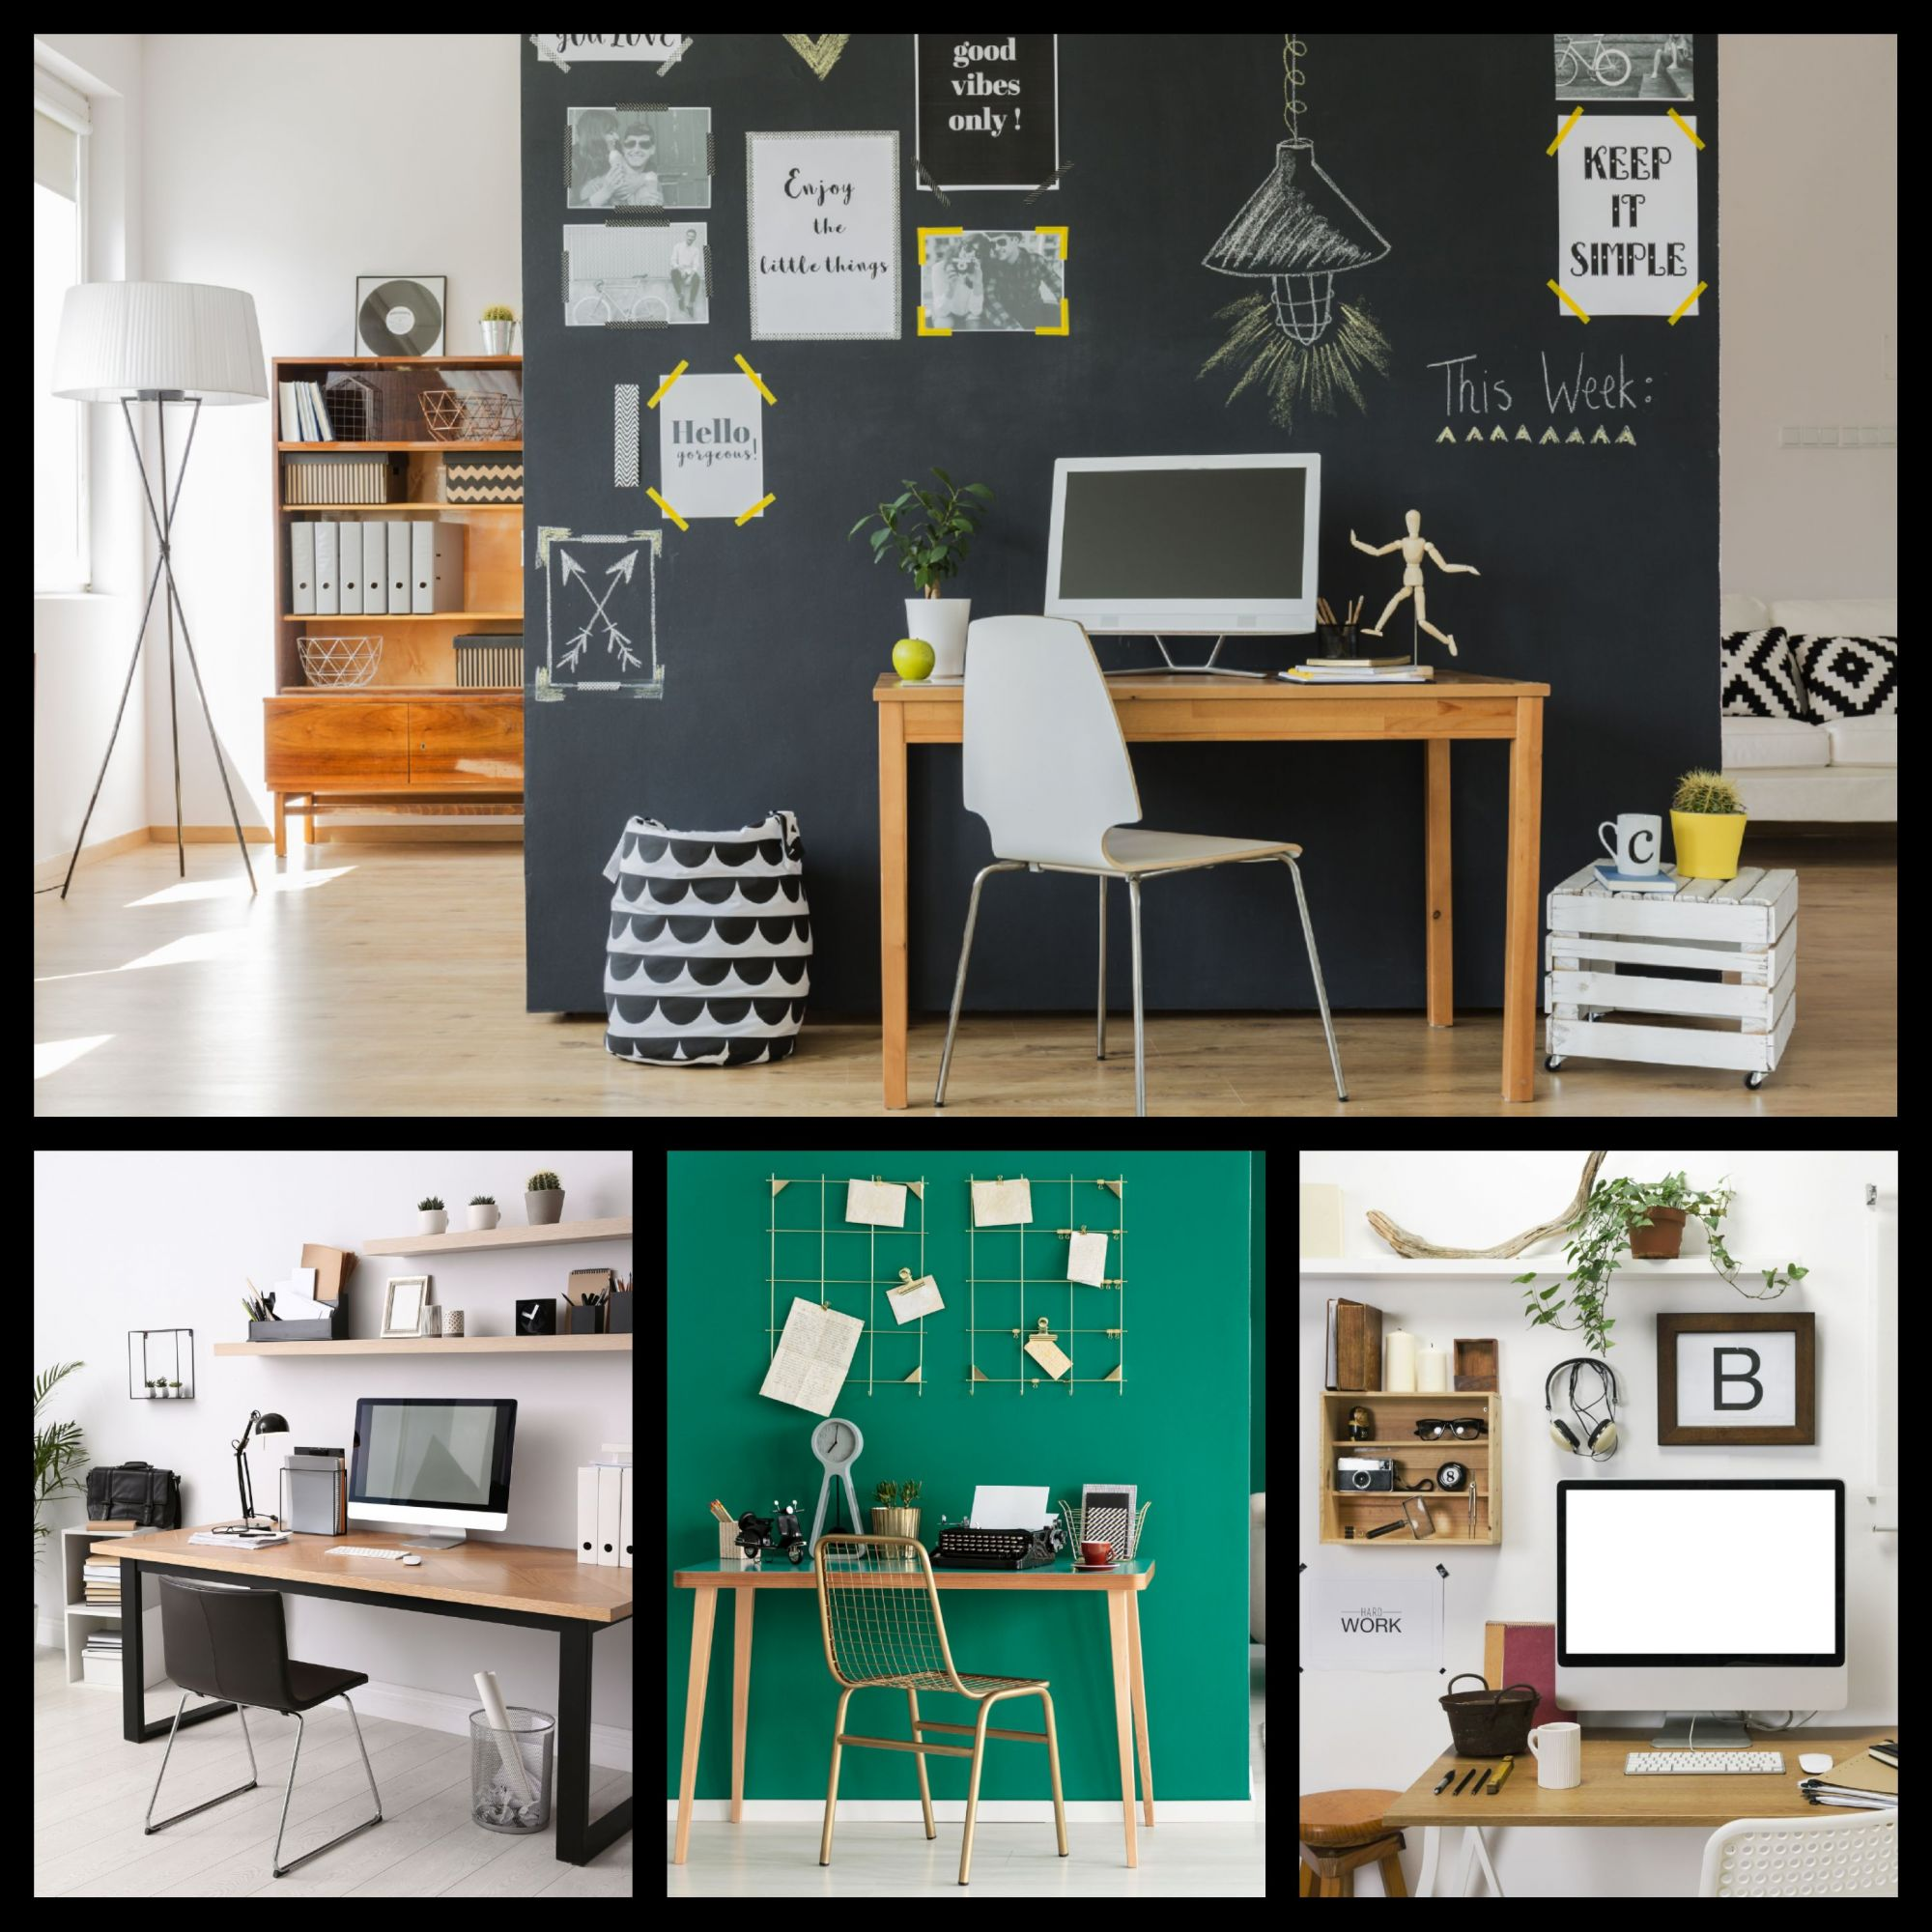 Home Office Inspiration: Organized, Efficient, and Creative